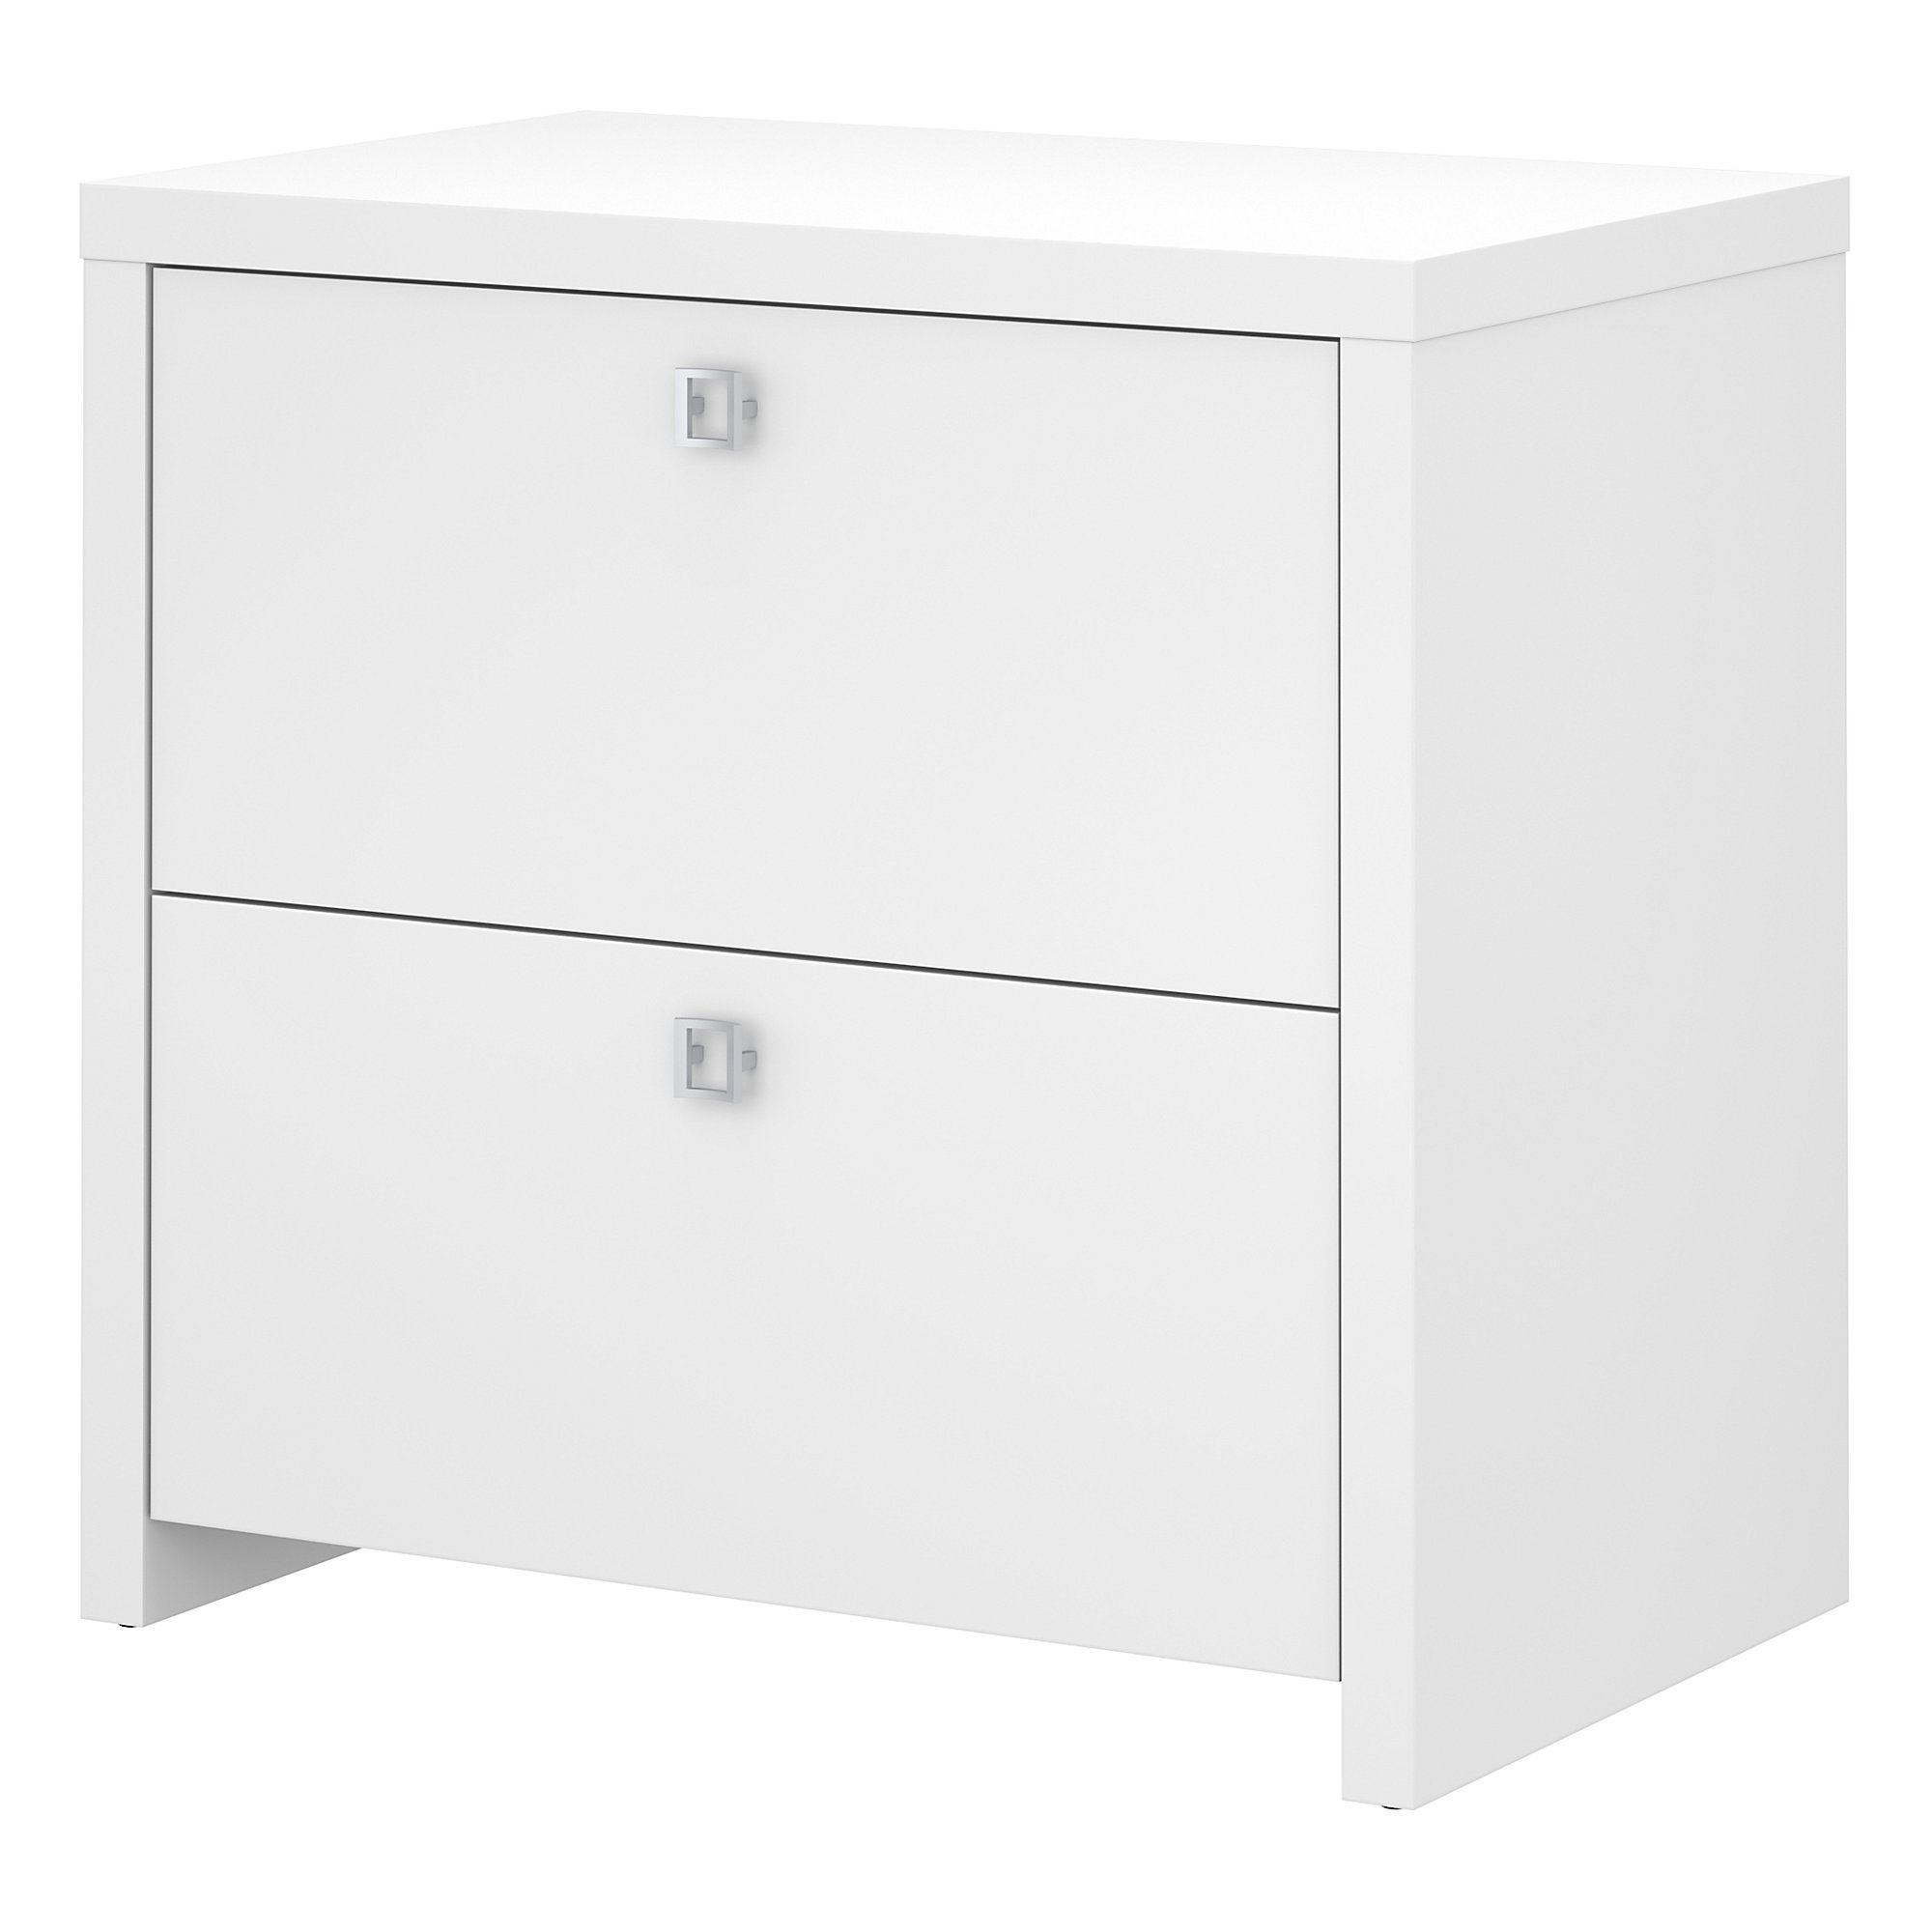 Office by kathy ireland Echo Lateral File Cabinet in Pure White by Office by kathy ireland